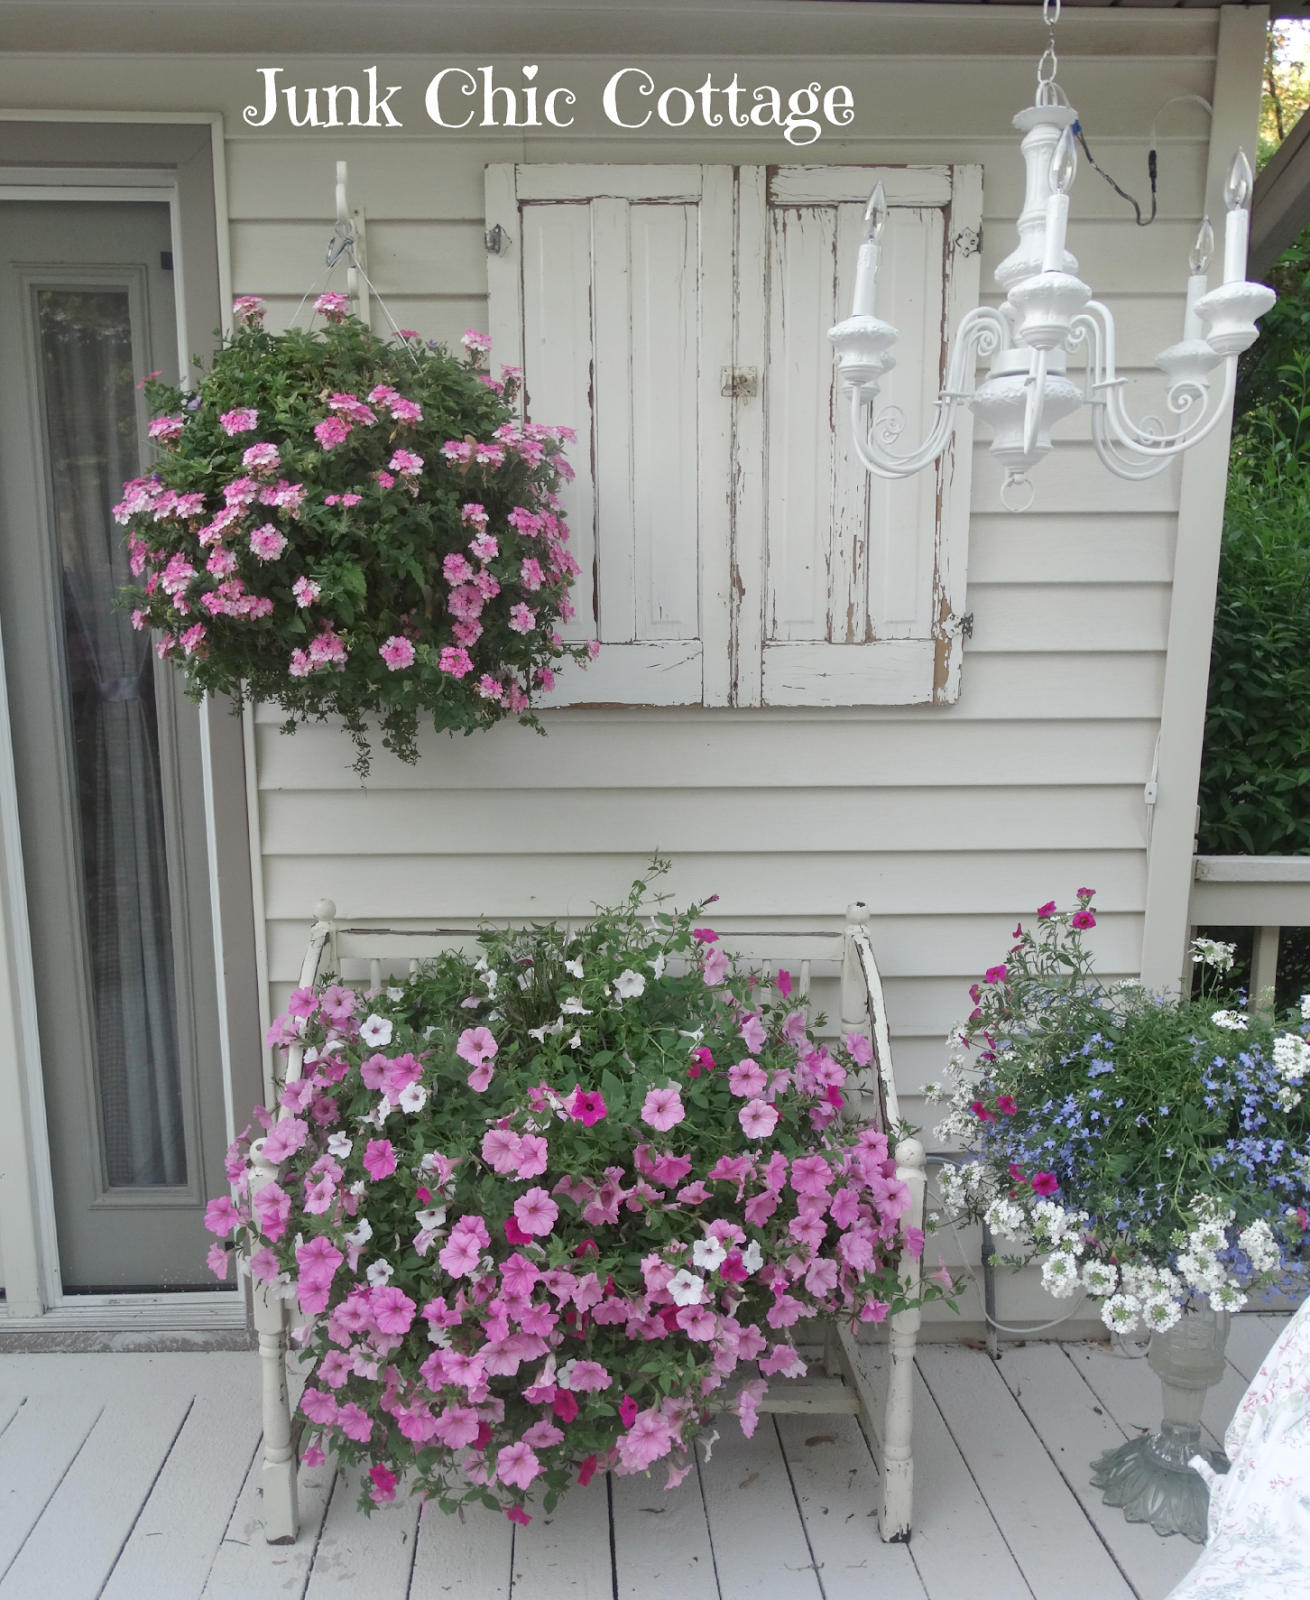 17 Lively Shabby Chic Garden Designs That Will Relax And: Here Are Some Pictures Of My Back Deck. This Is Truly My